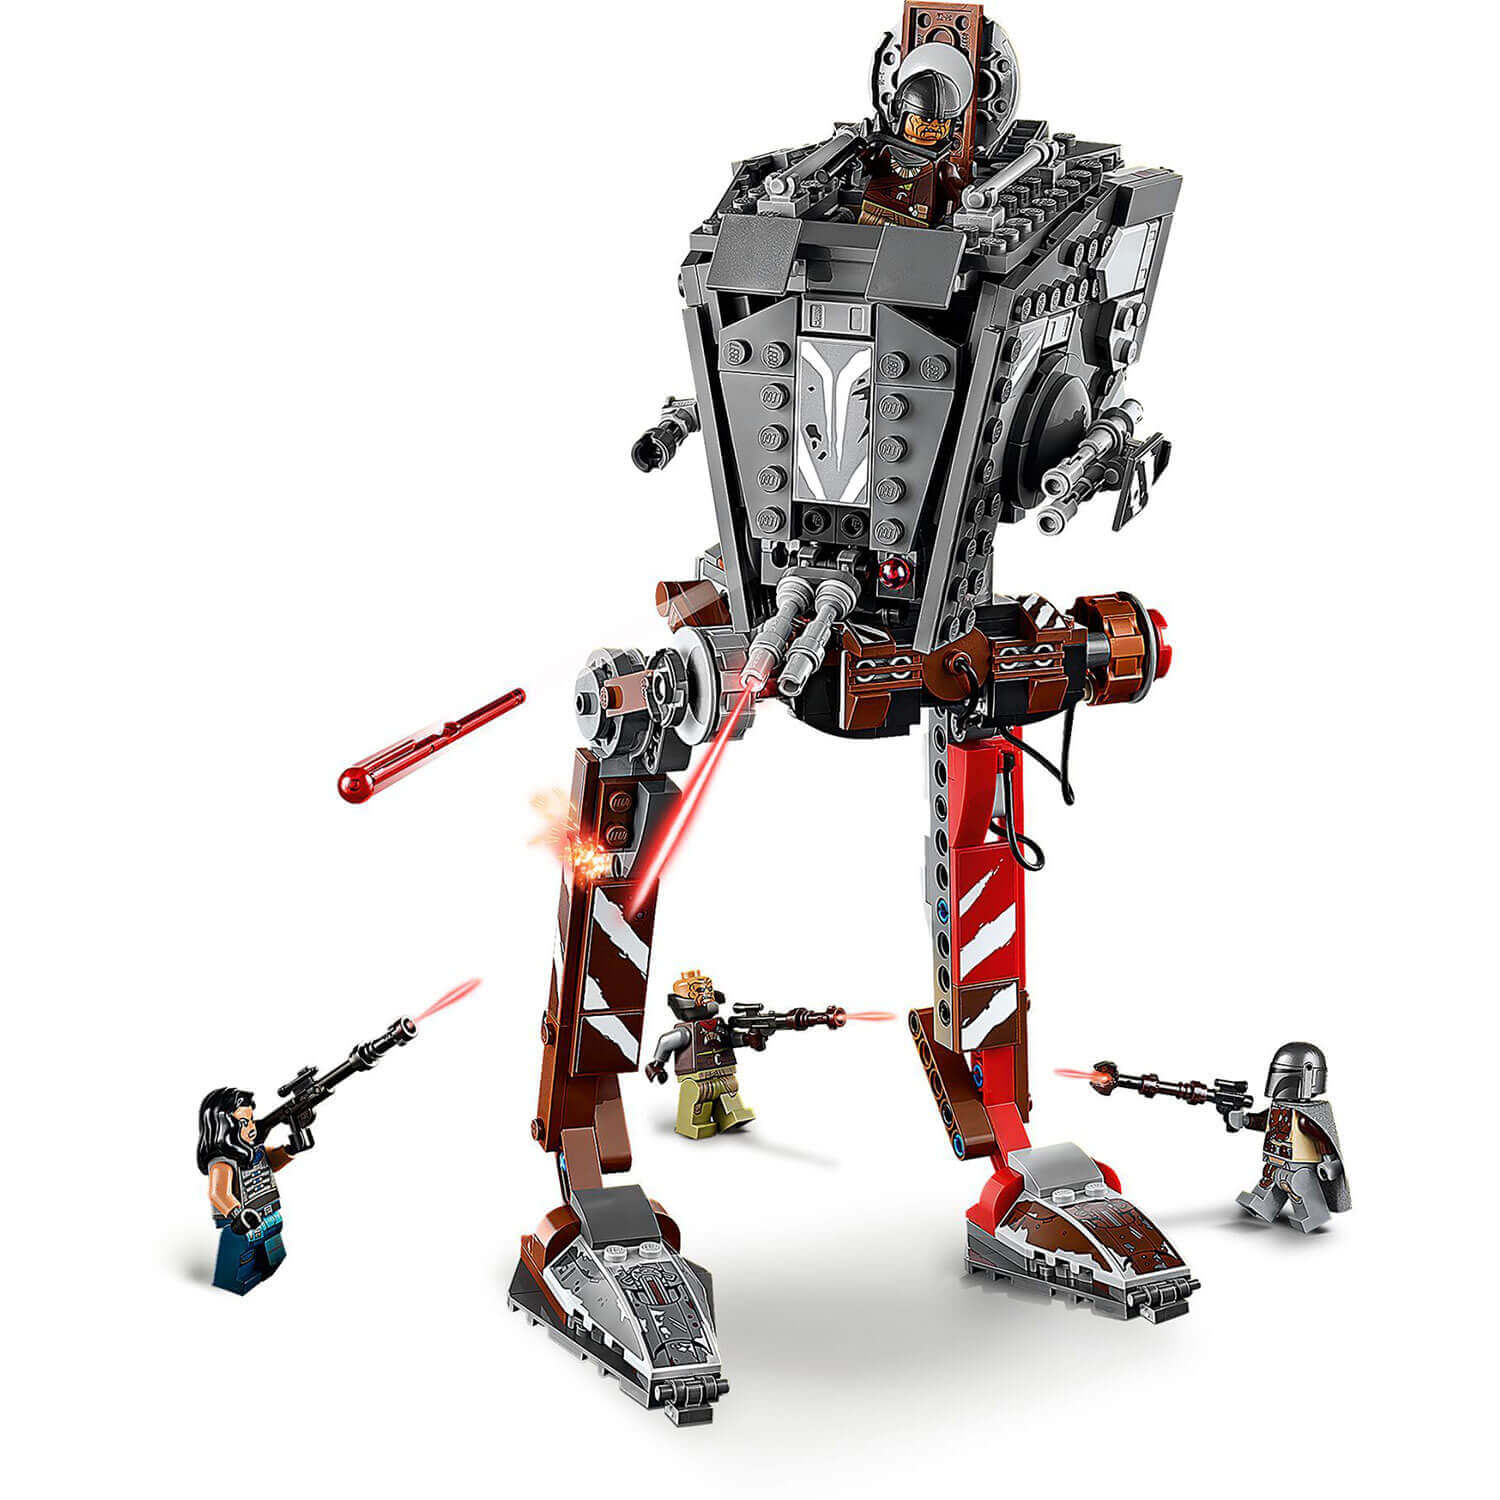 75254 AT-ST Raider